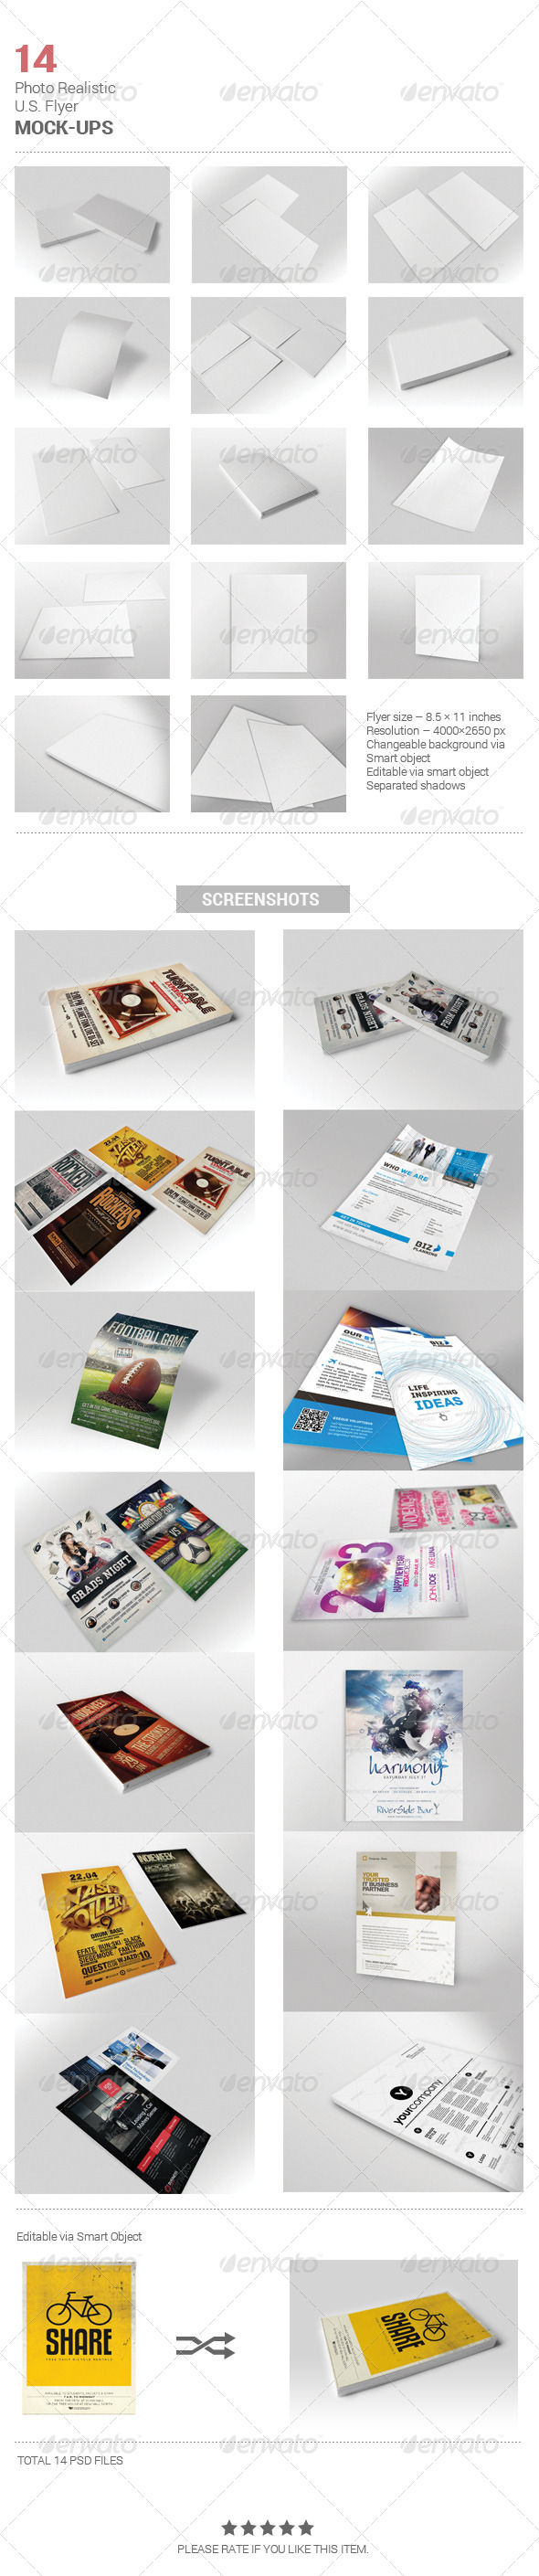 GraphicRiver 14 REALISTIC U.S FLYER MOCK-UPS 5409702